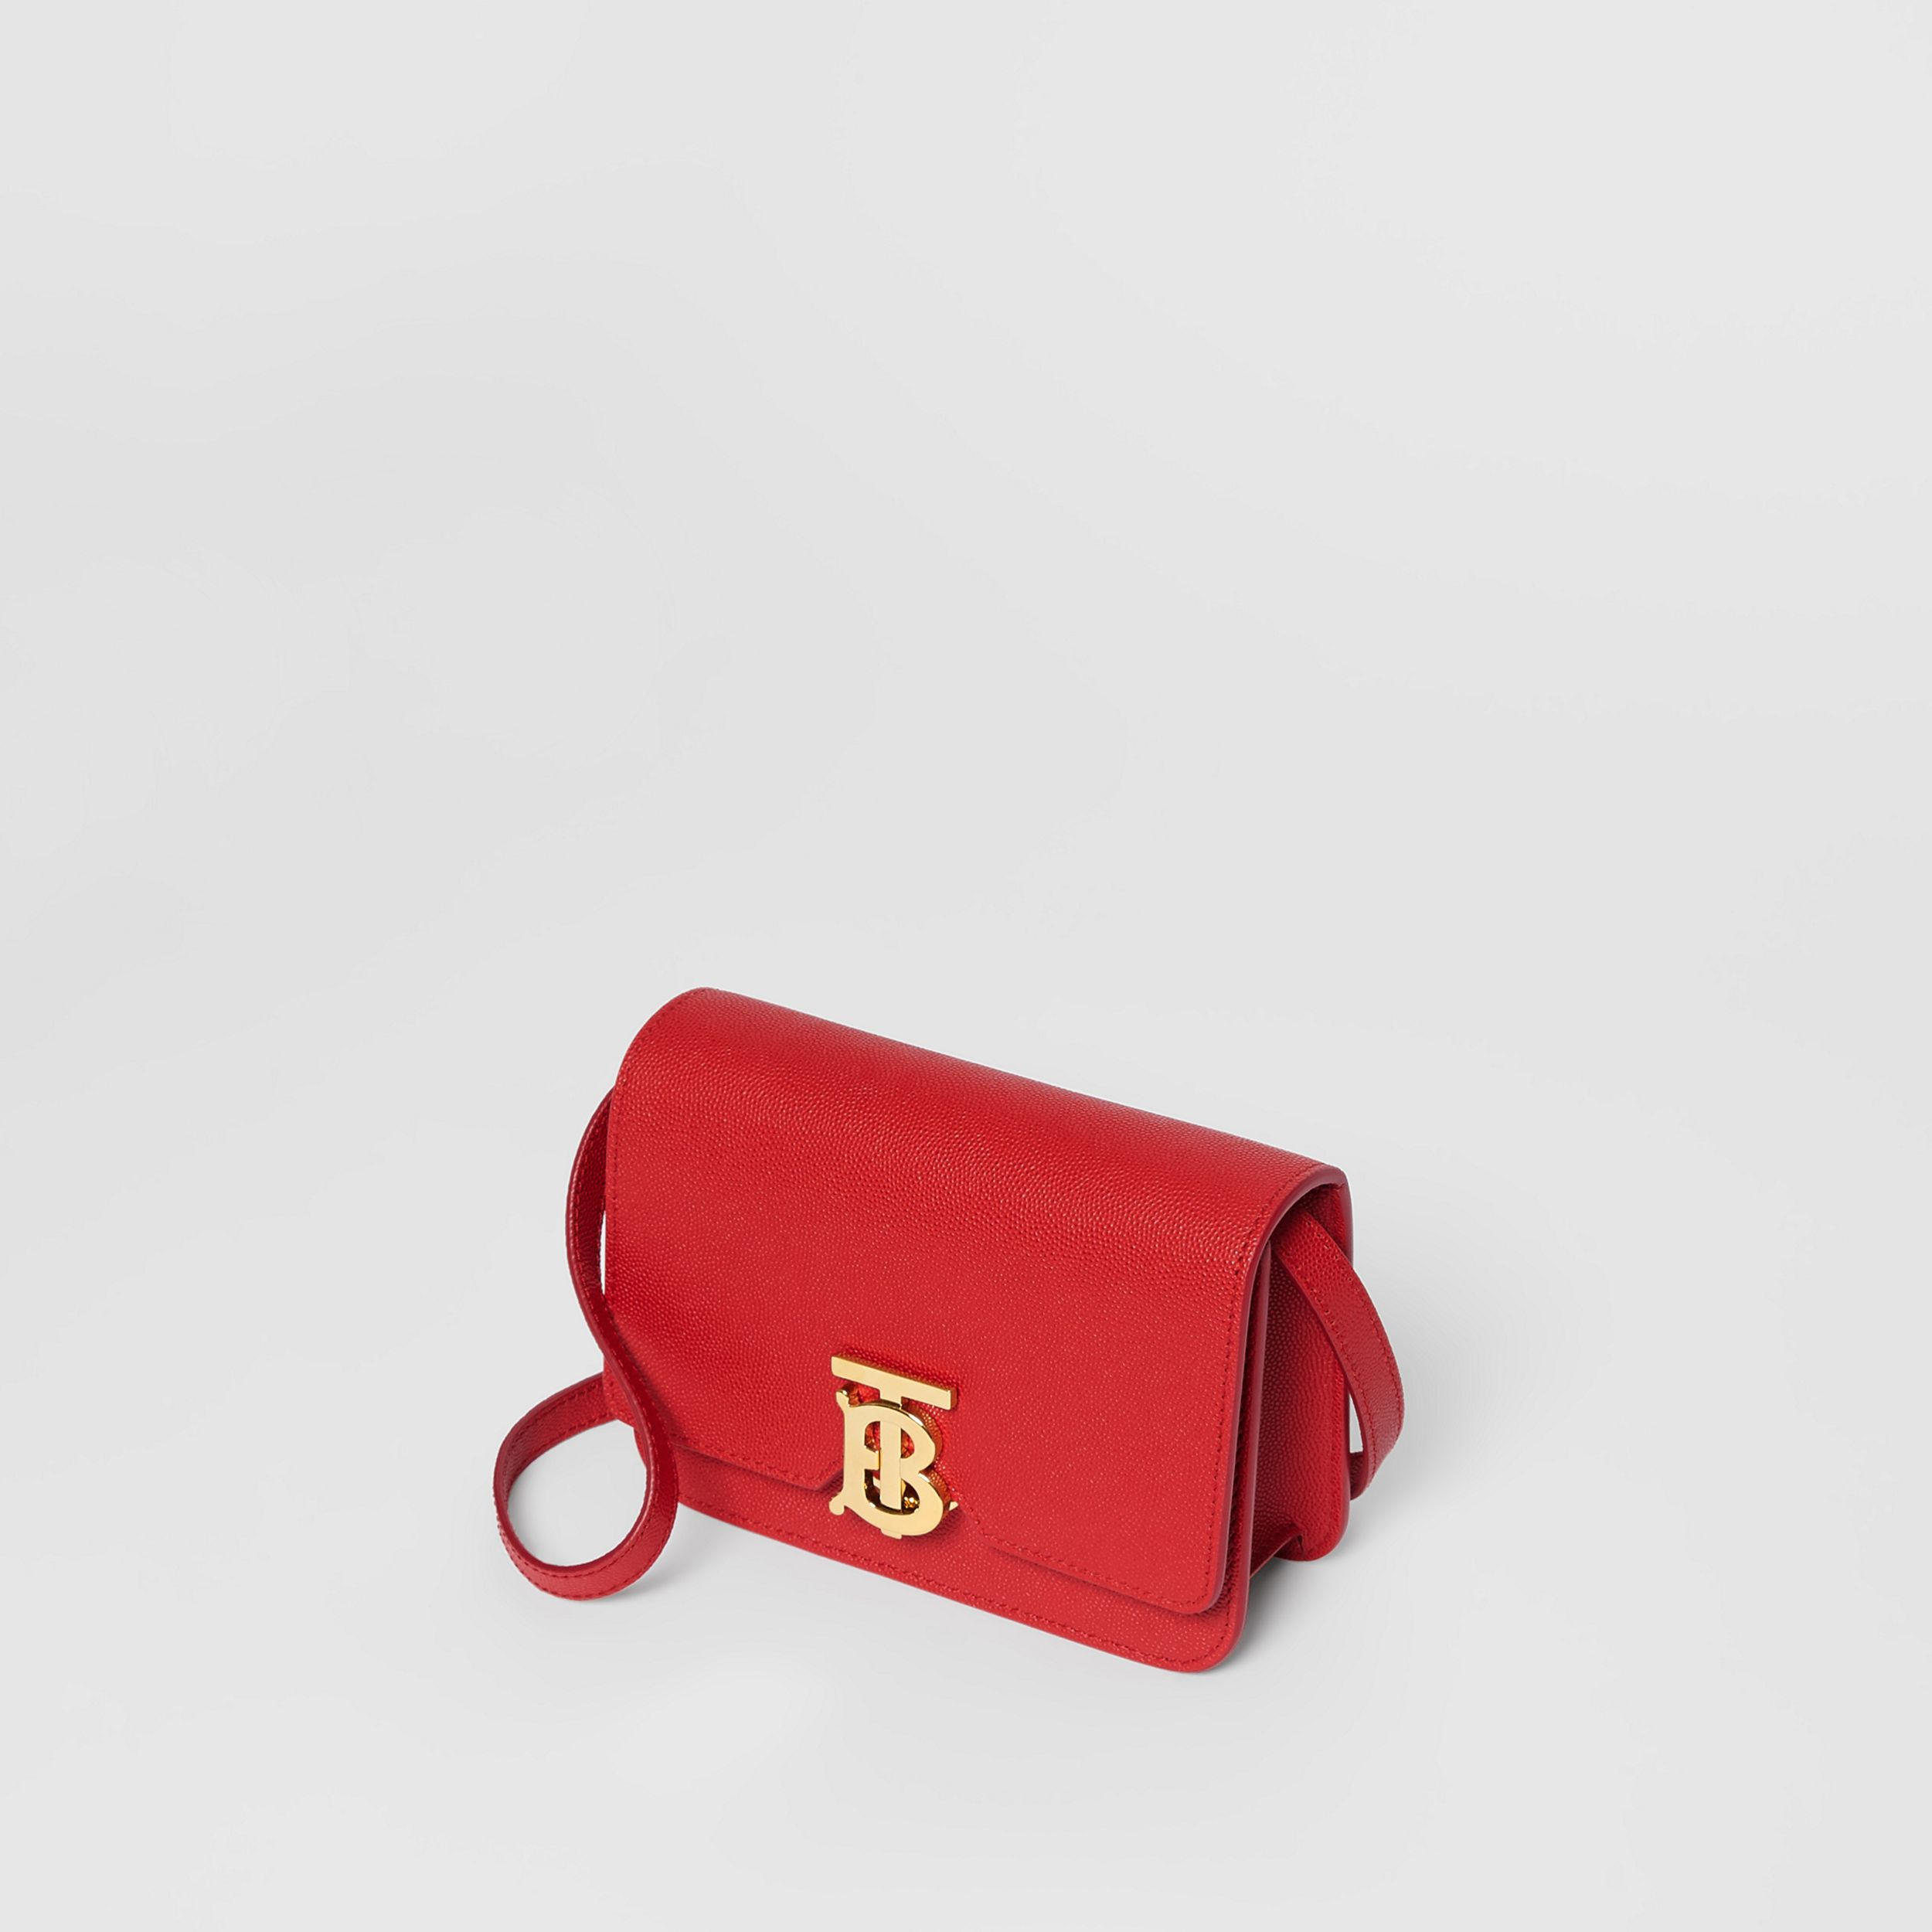 Mini Grainy Leather TB Bag in Bright Red | Burberry - 4